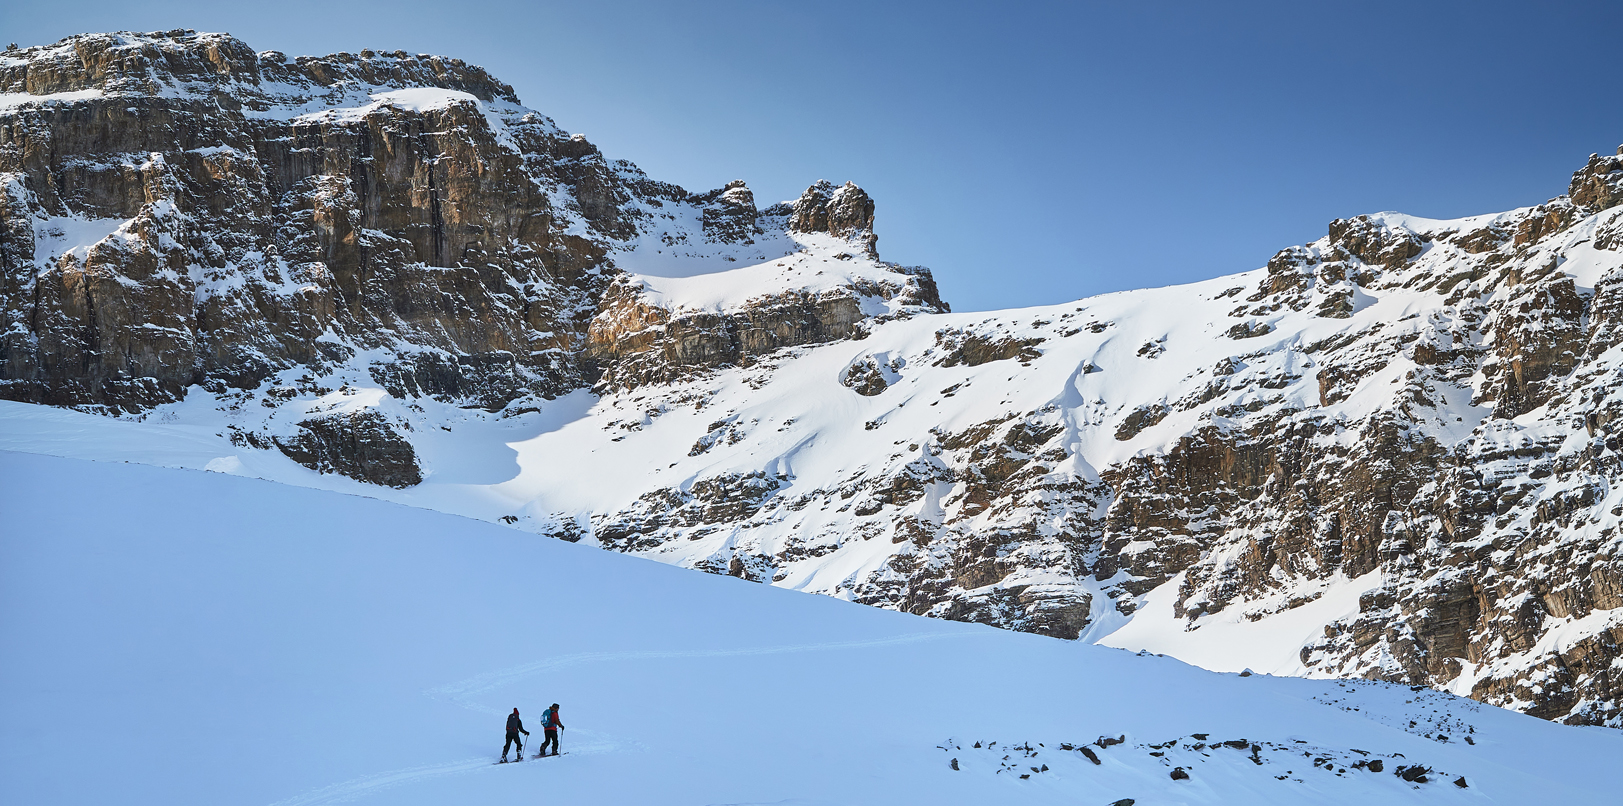 two backcountry skiiers touring through sheol valley towards surprise pass in lake louise